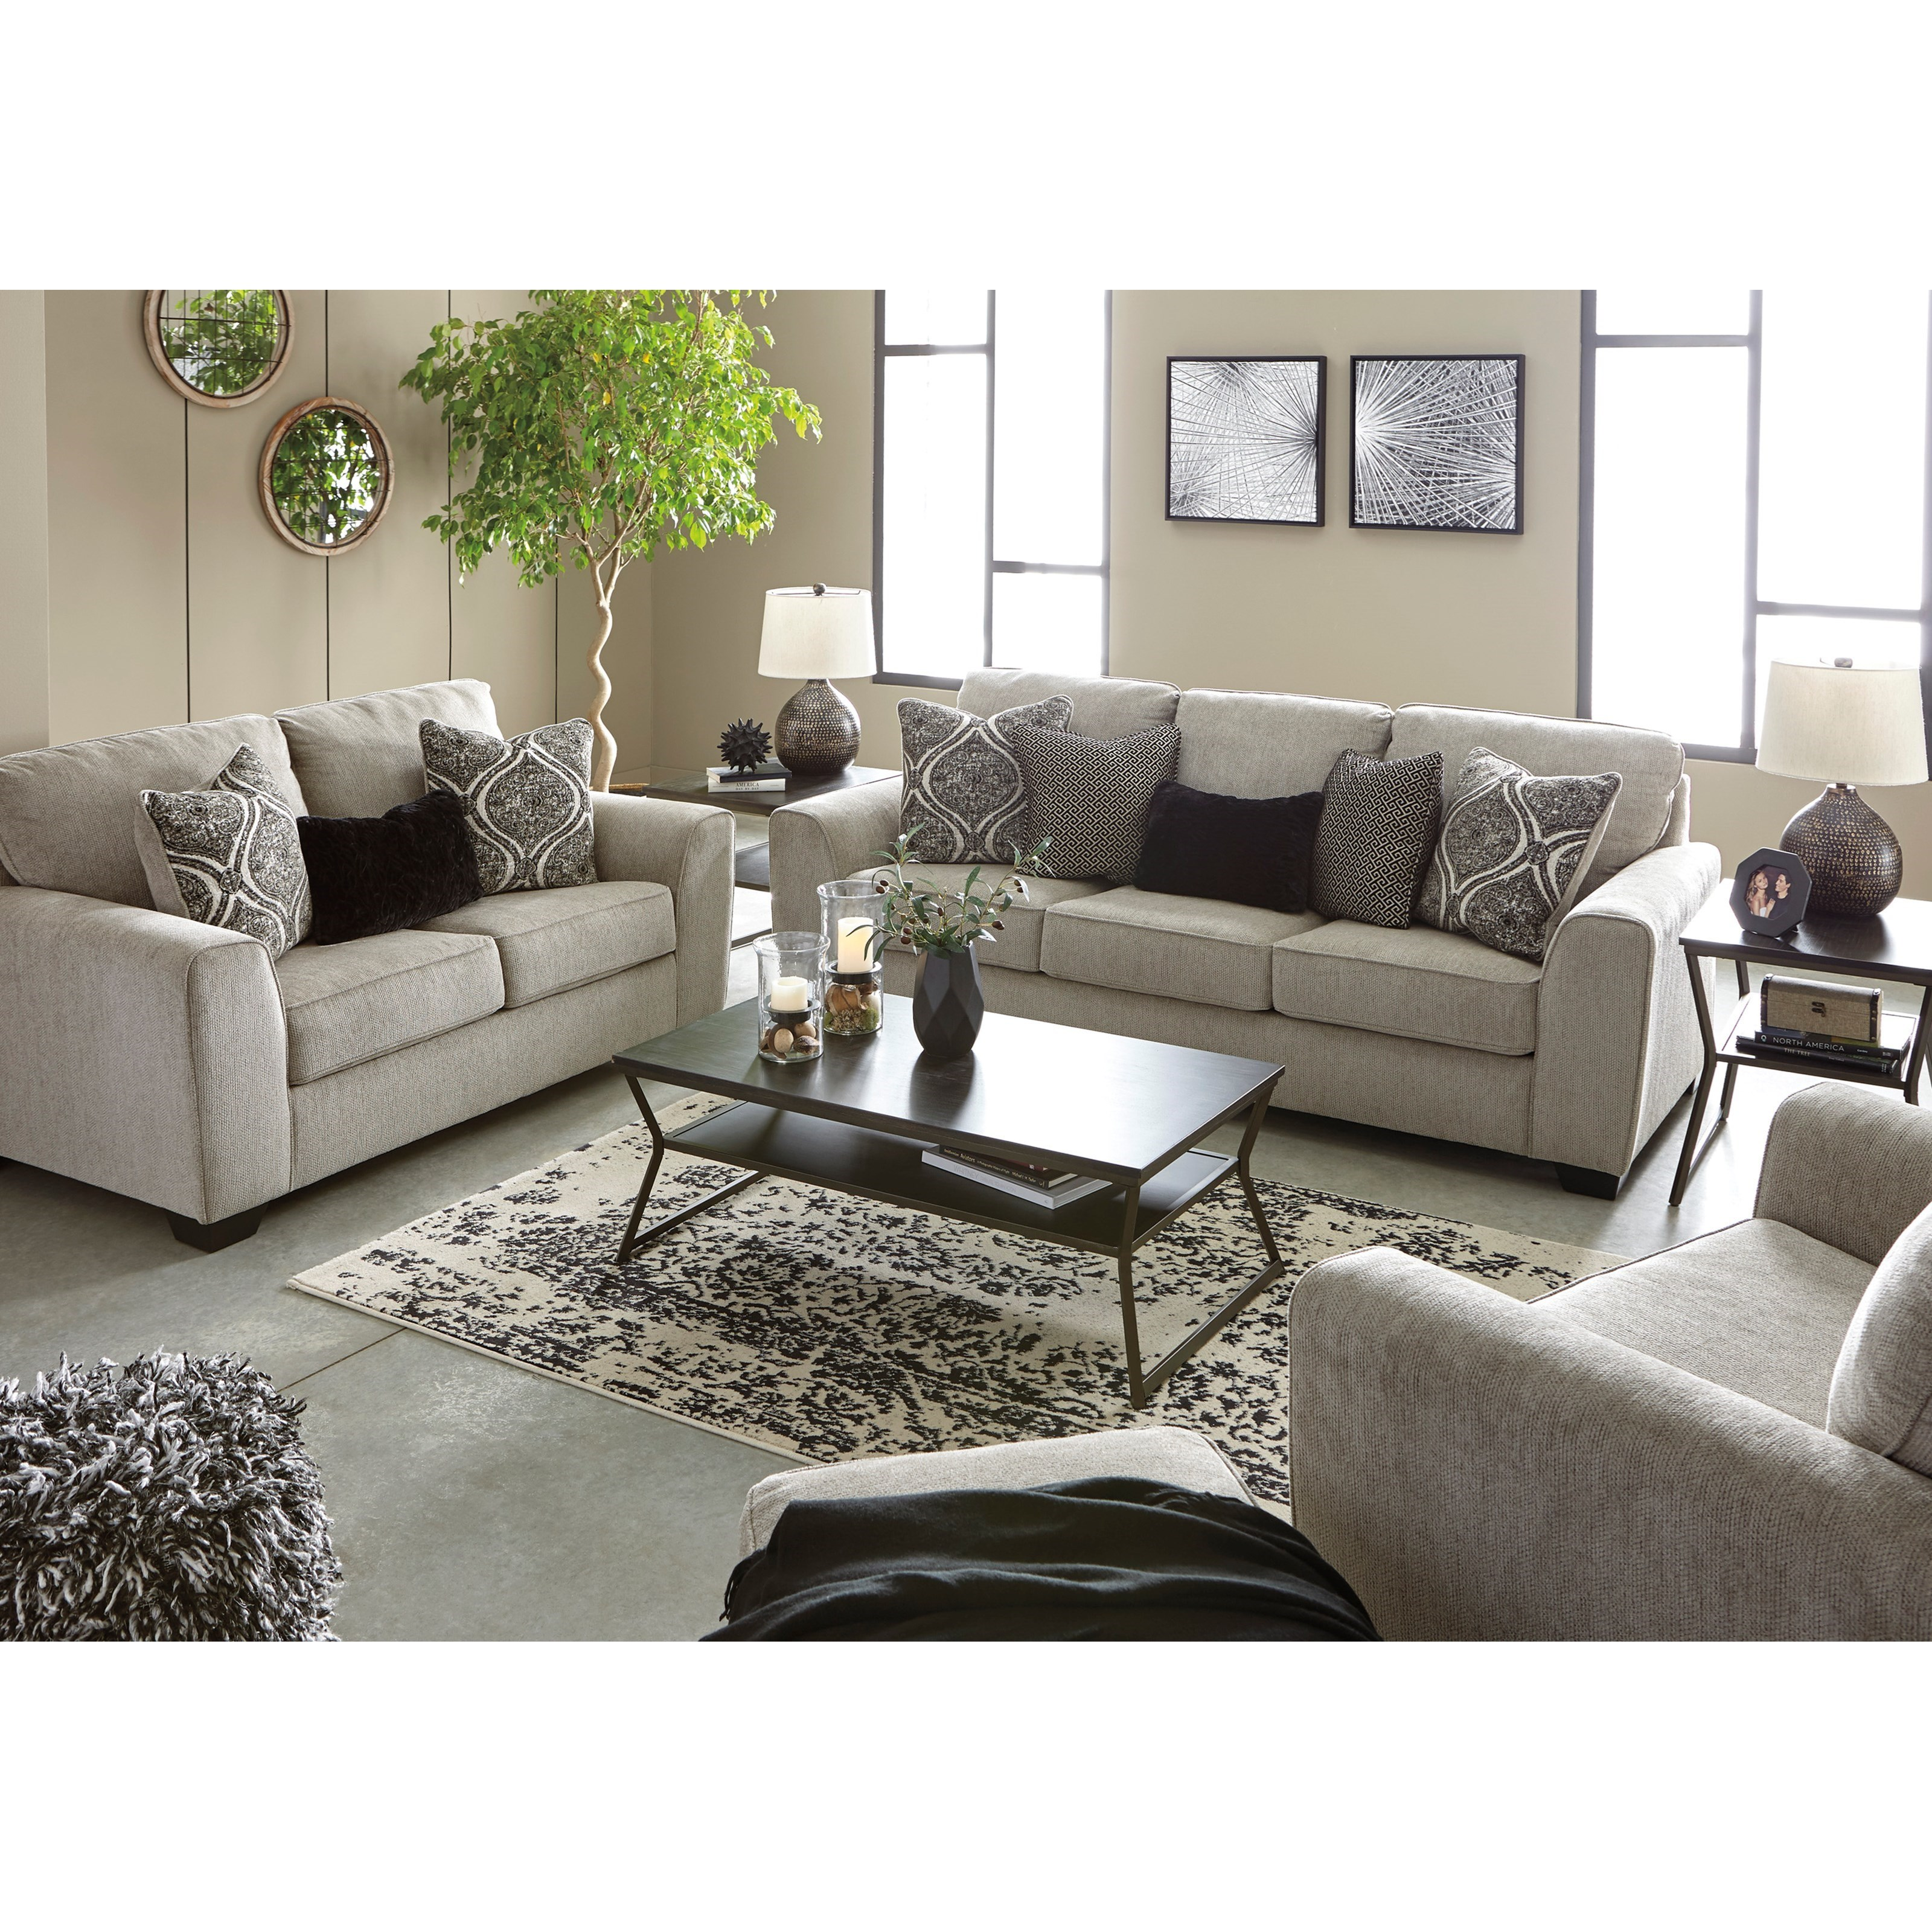 Benchcraft Parlston Contemporary Queen Sleeper Sofa With